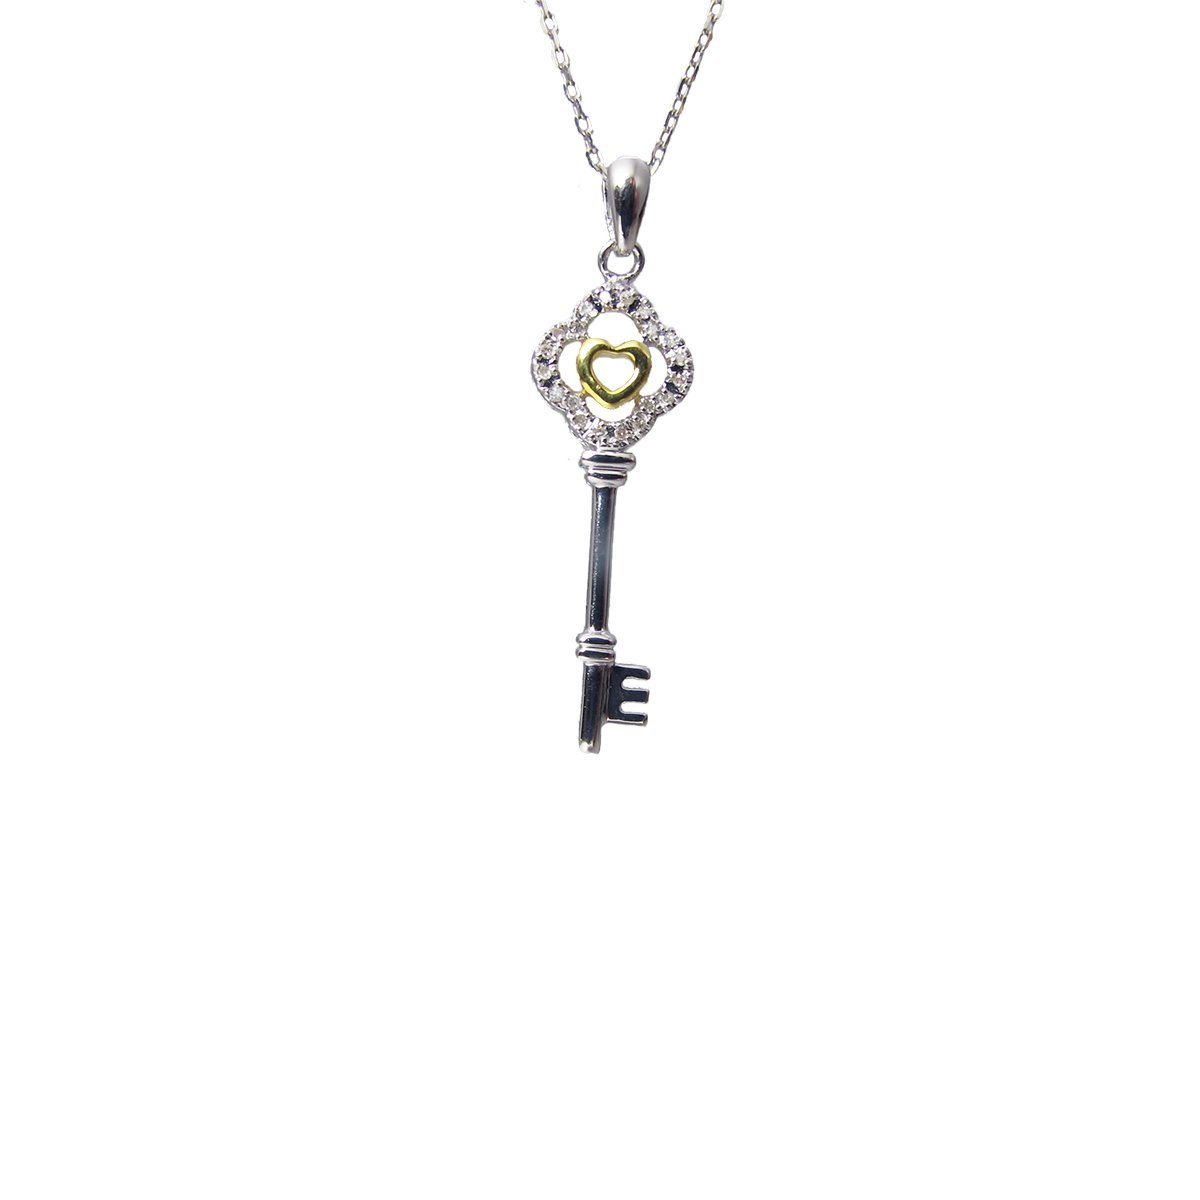 18 USA Precious Key Pendant Necklace with Diamonds with Yellow Gold Color Heart